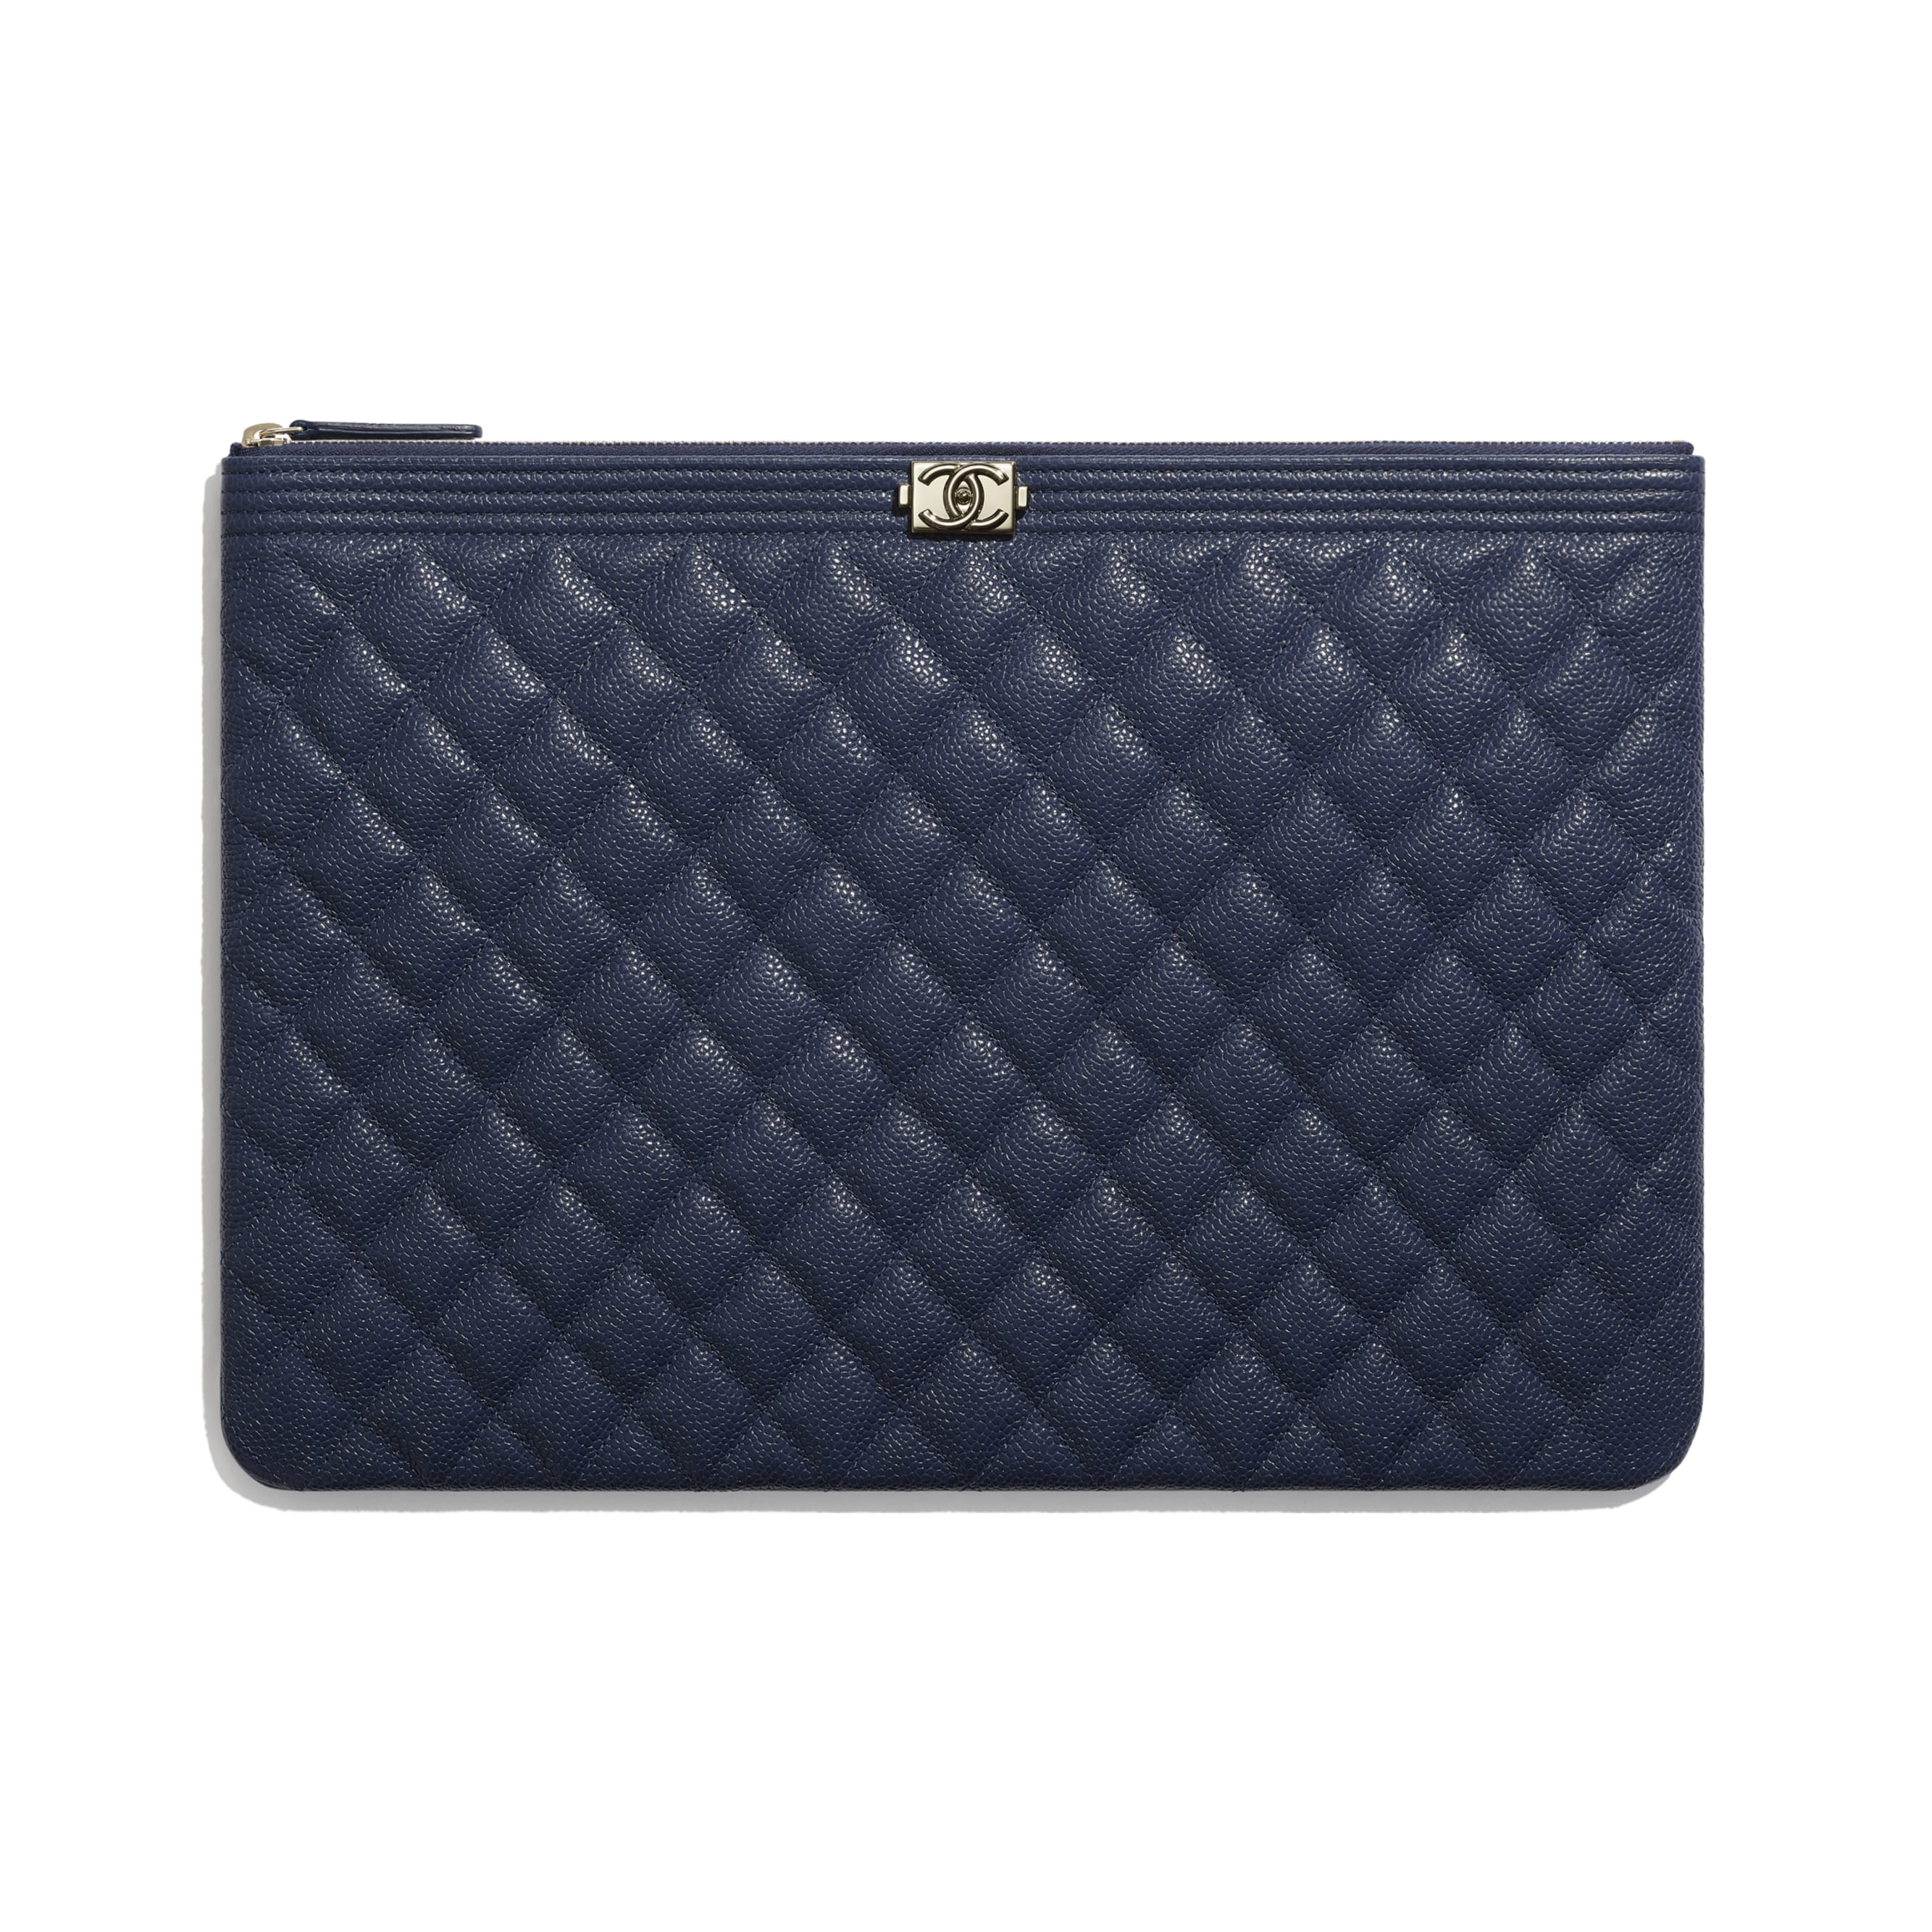 BOY CHANEL Large Pouch - Navy Blue - Grained Shiny Calfskin & Gold-Tone Metal - CHANEL - Default view - see standard sized version